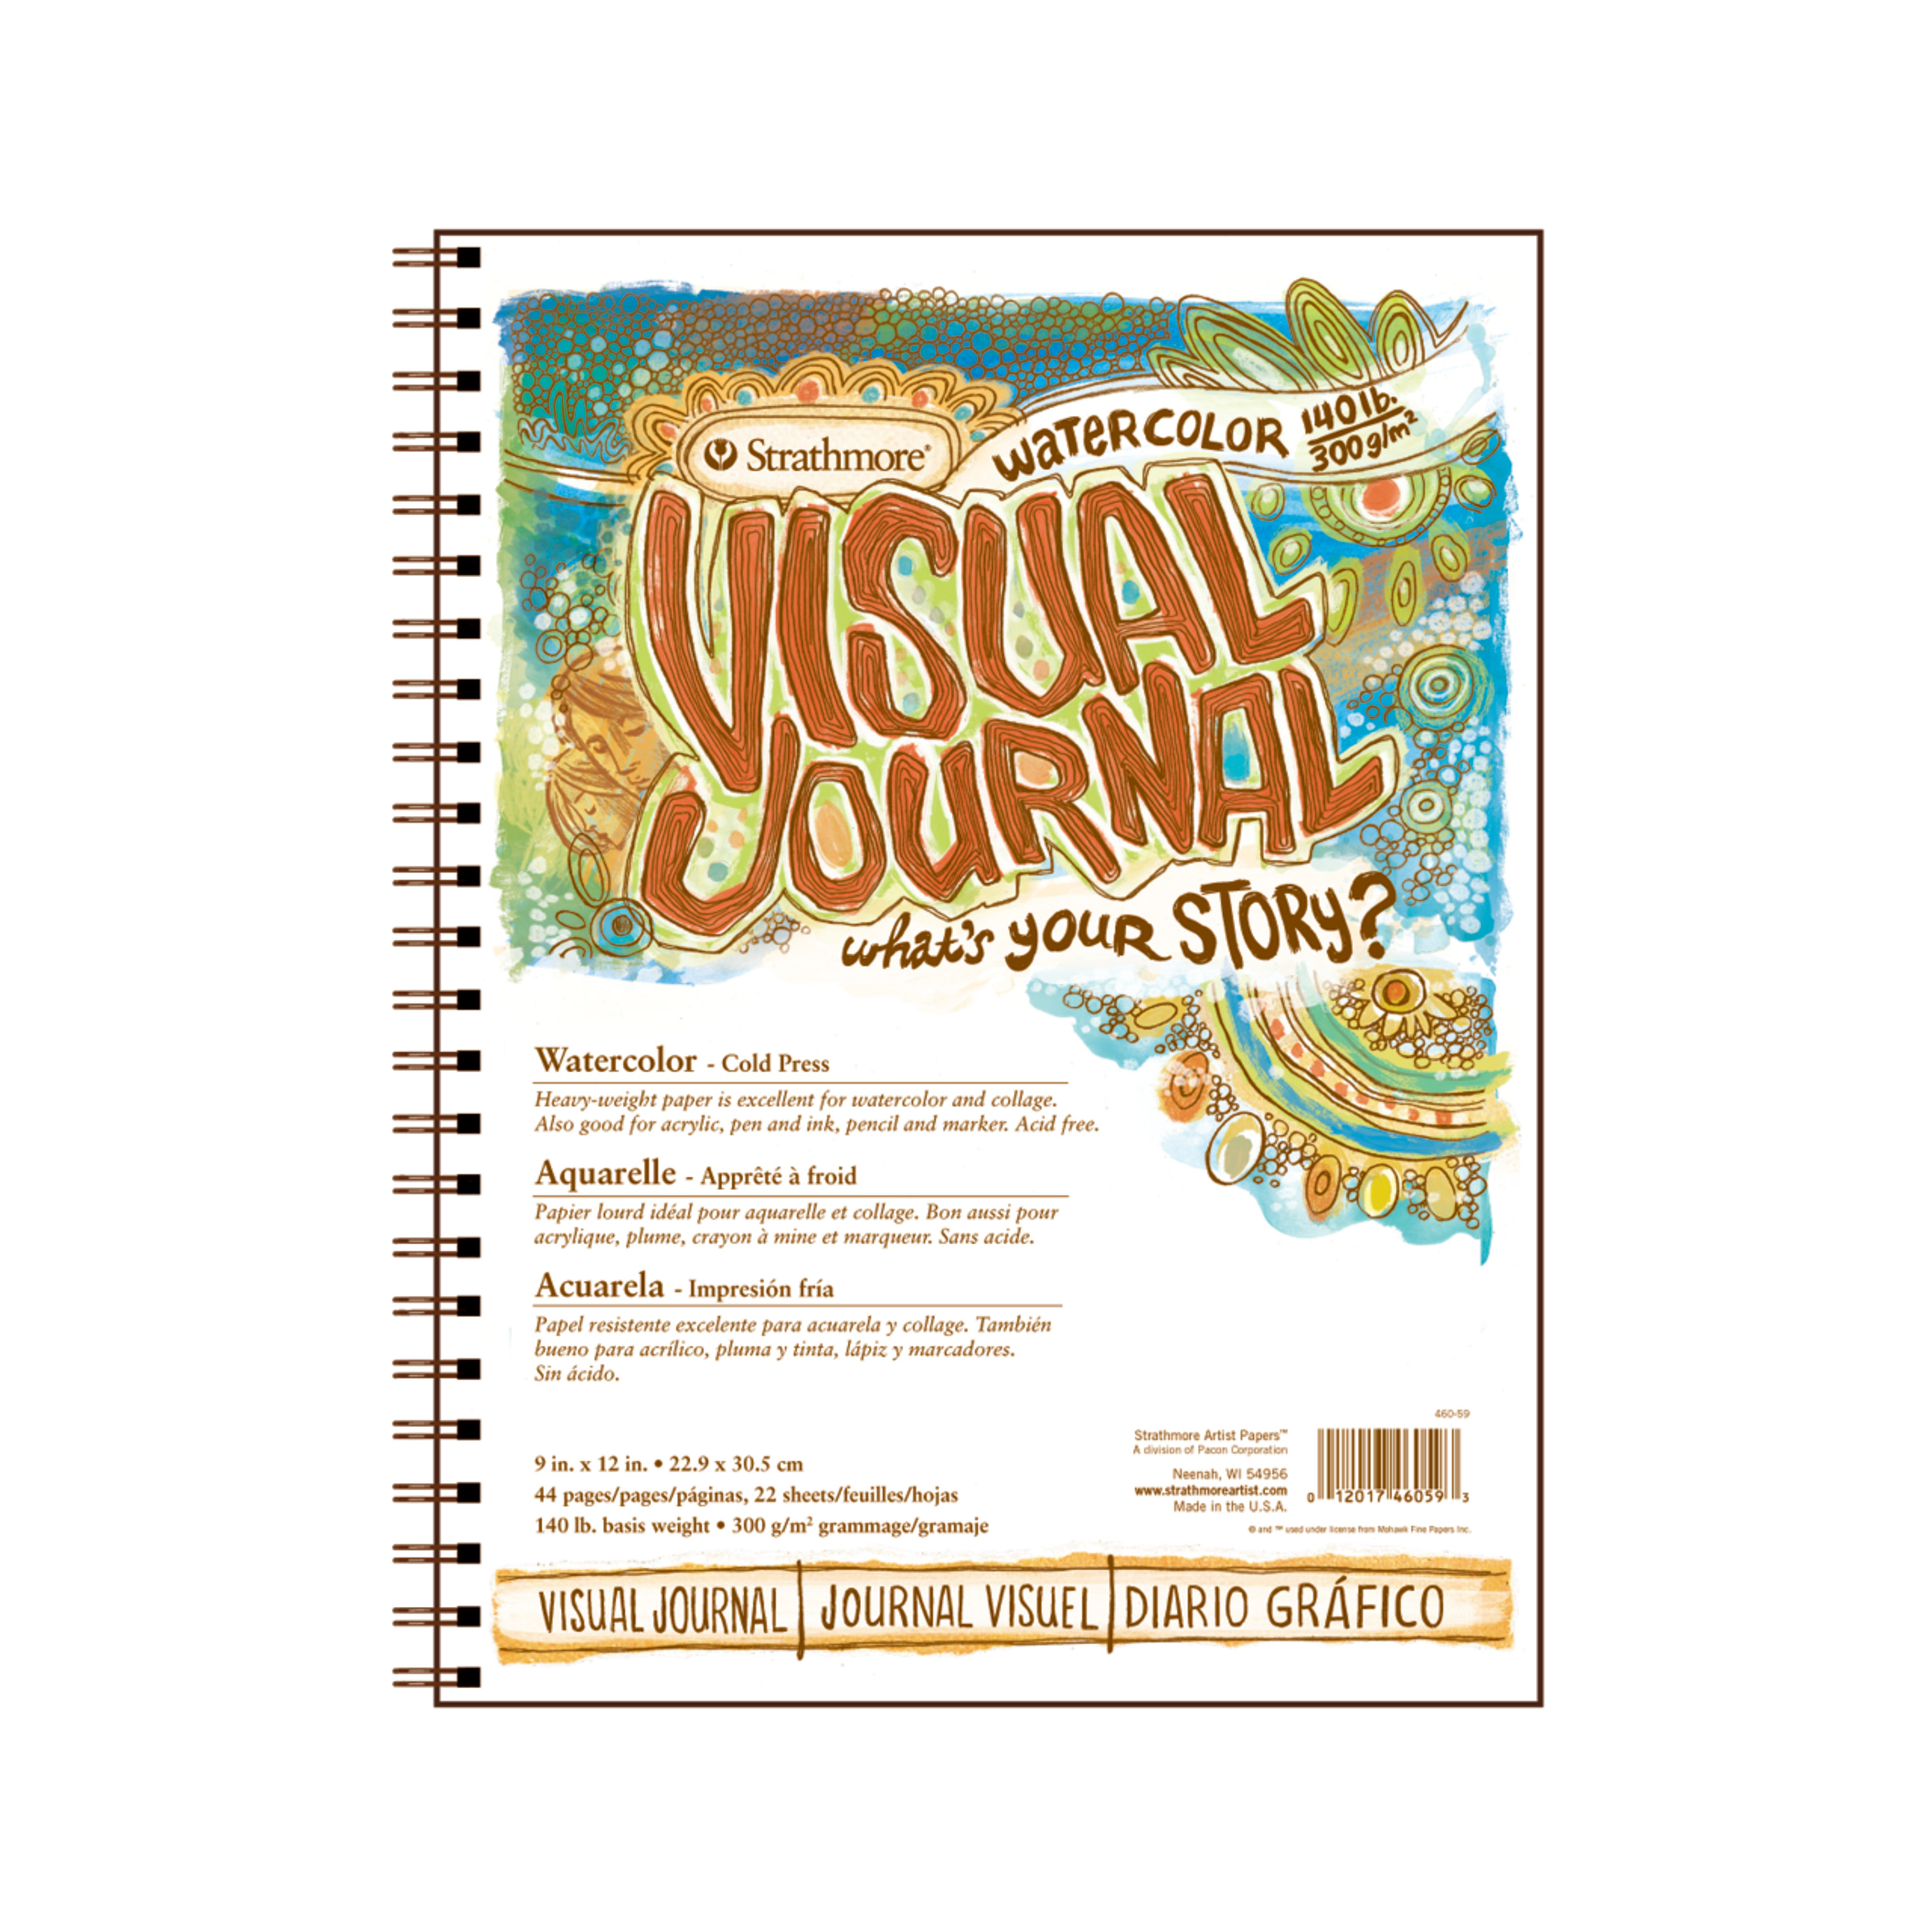 Strathmore Visual Journal, Cold-Press Watercolor, 9in x 12in, 140 lb.